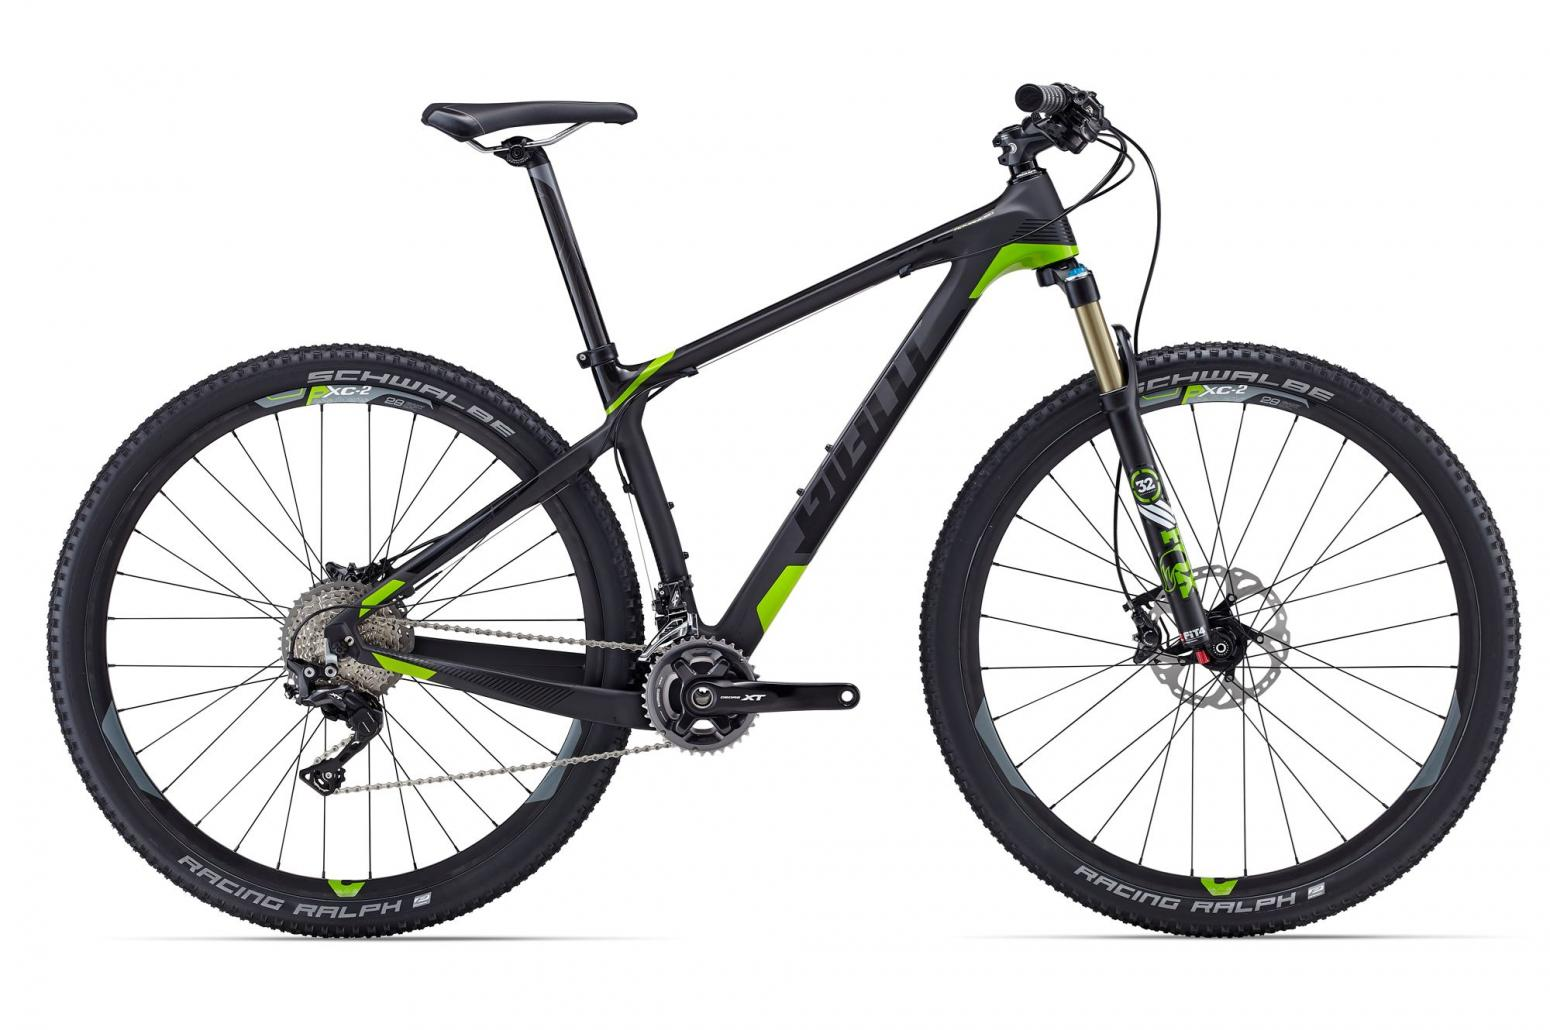 Giant MTB Trail/Race XtC Advanced 29er 1 2016